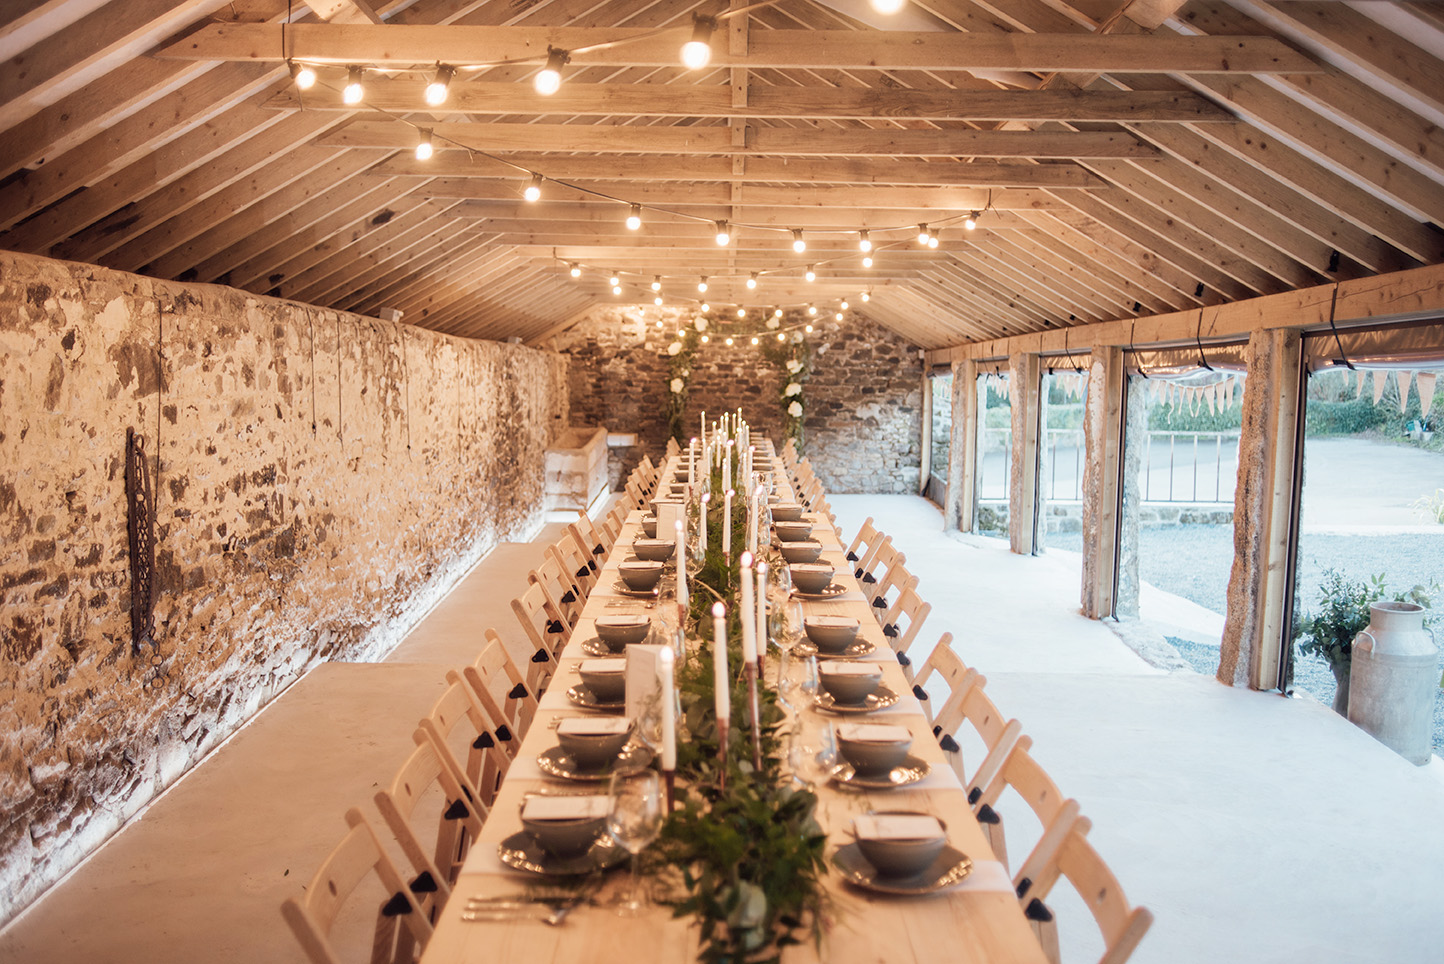 The inside of the Cowyard Barn rustic party and reception space set for a night time dinner at Pengenna Manor Cornwall wedding venue03.jpg